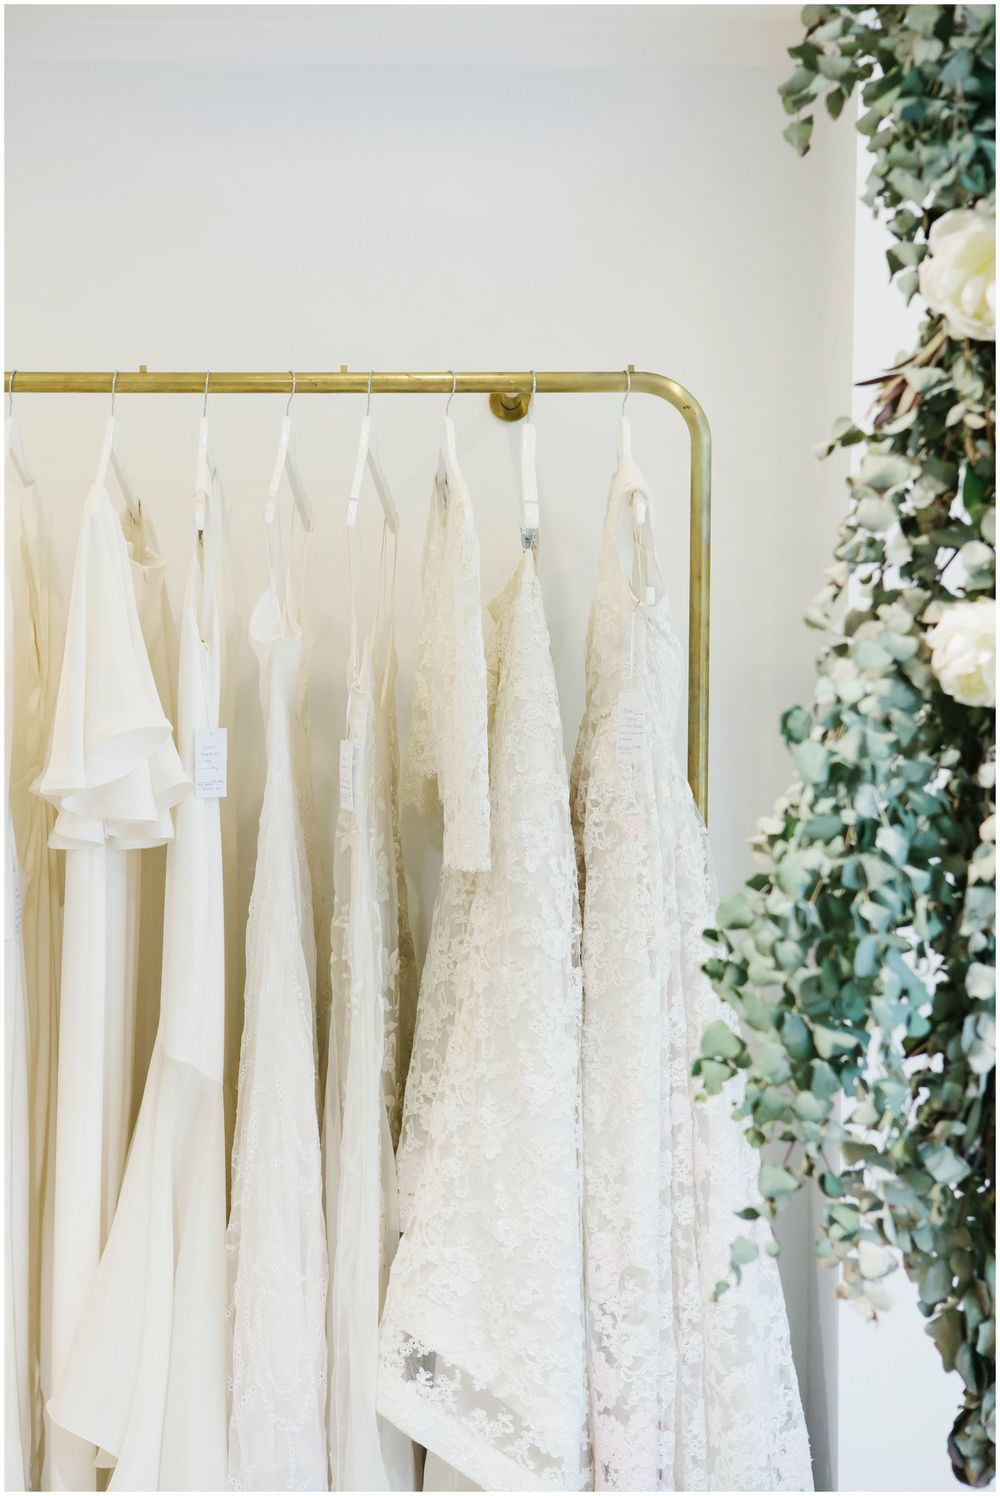 The Bridal Atelier, Sydney by Samantha Macabulos (16 of 37).jpg